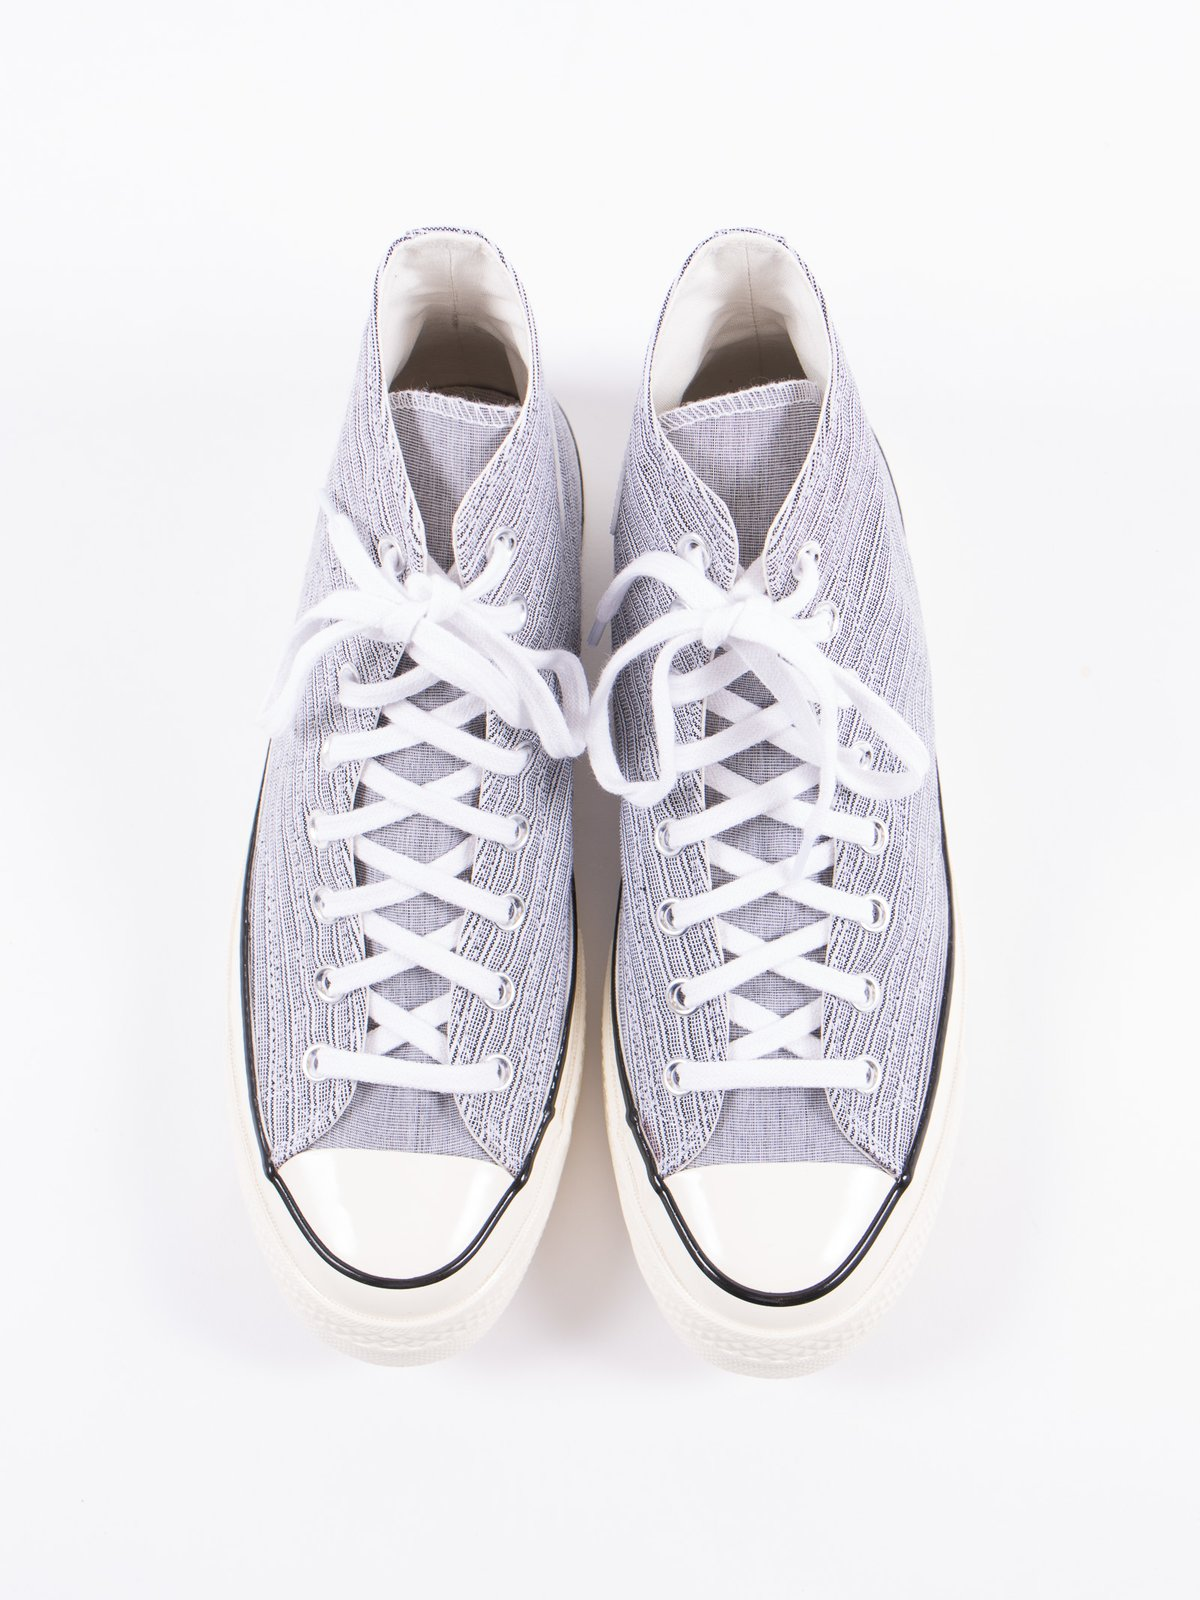 White/Black Poplin Shirt Chuck Taylor All Star 70s Hi - Image 5